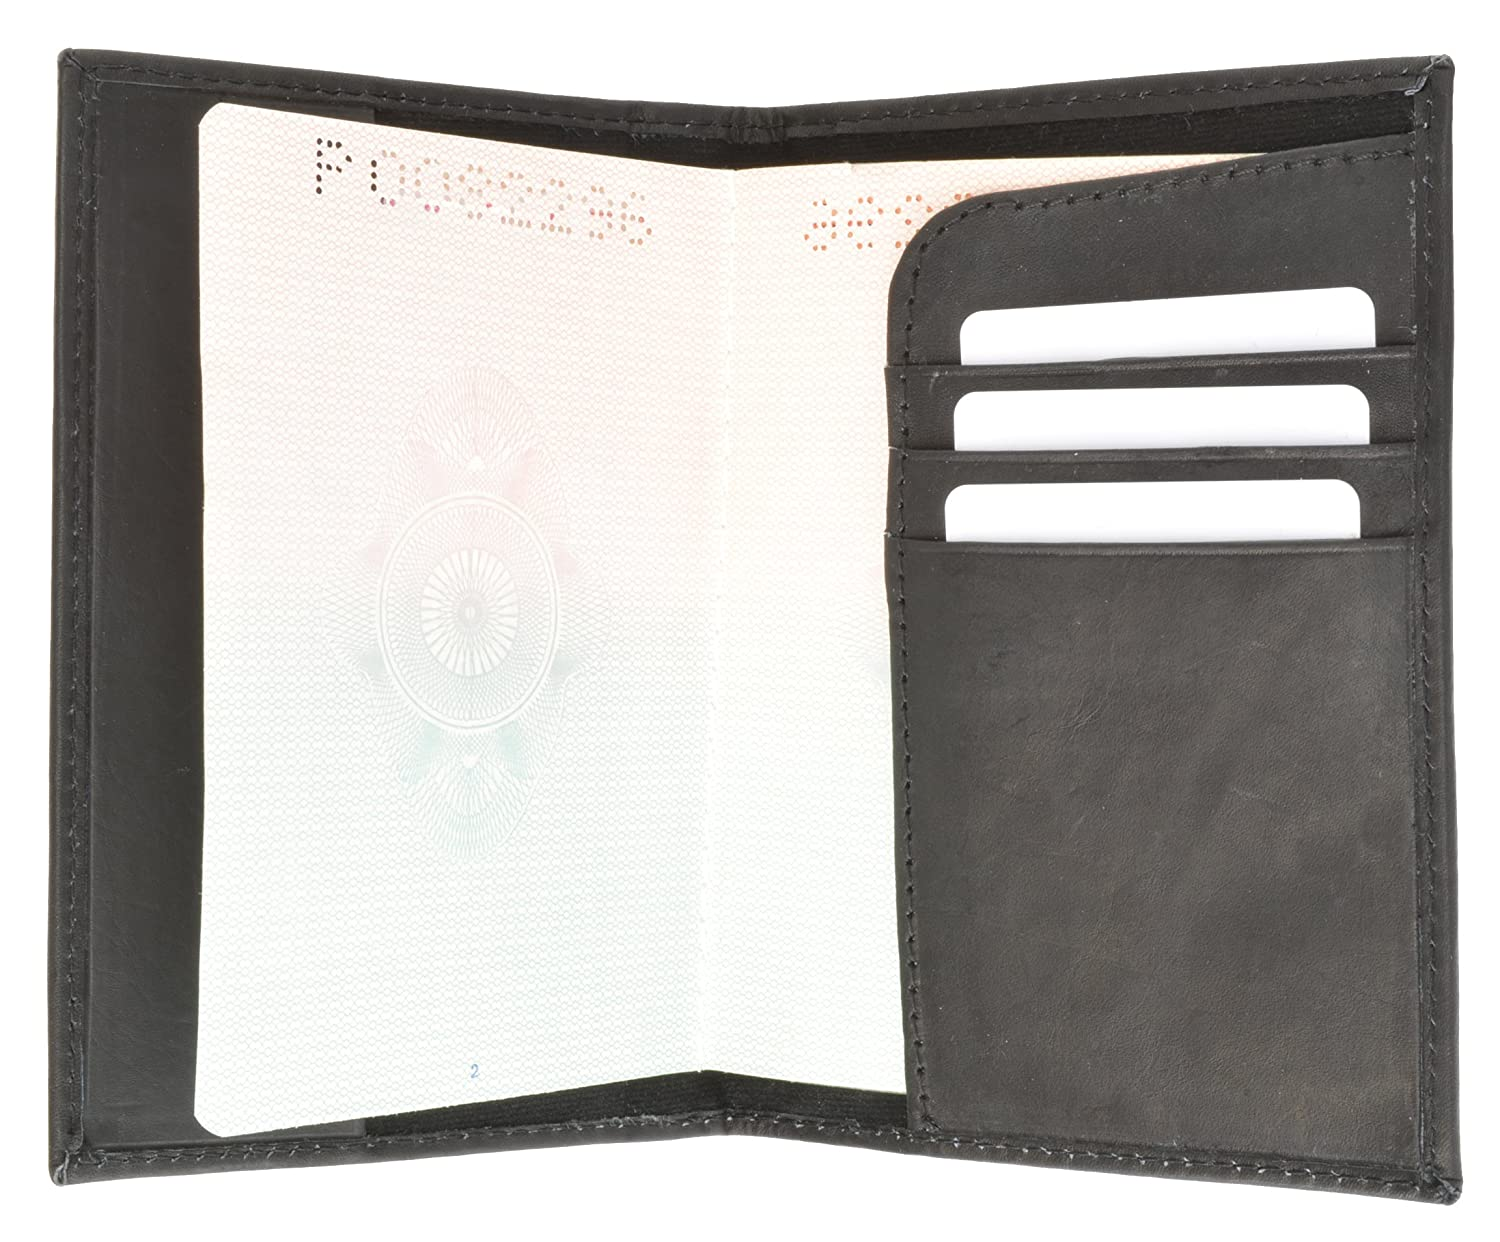 601 USA Gold Genuine Leather Passport Cover for Travel with Credit Card Slots By Marshal